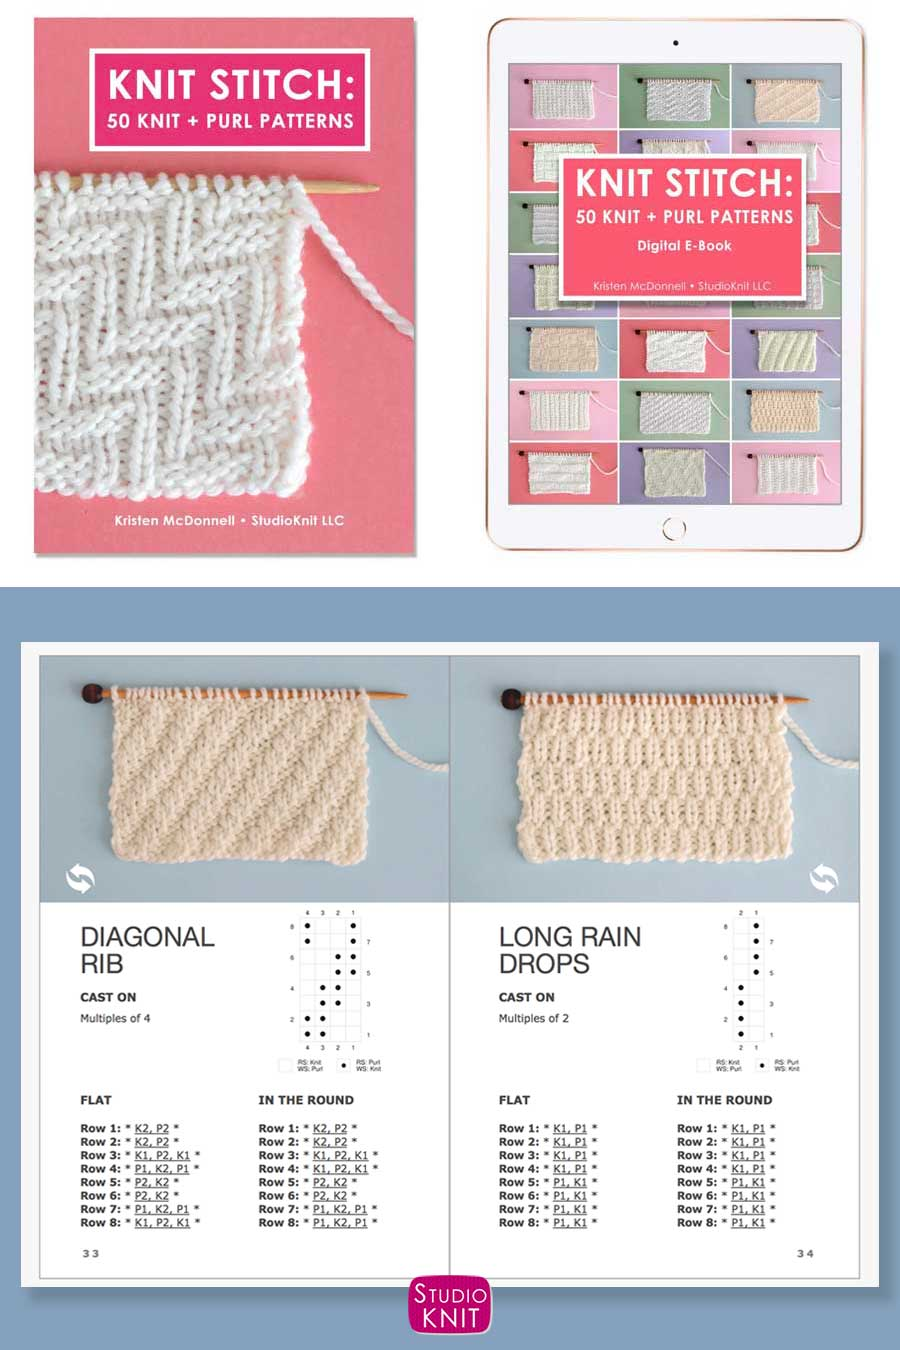 Knit Stitch Pattern Book with Diagonal Rib and Long Raindrops Stitch Patterns